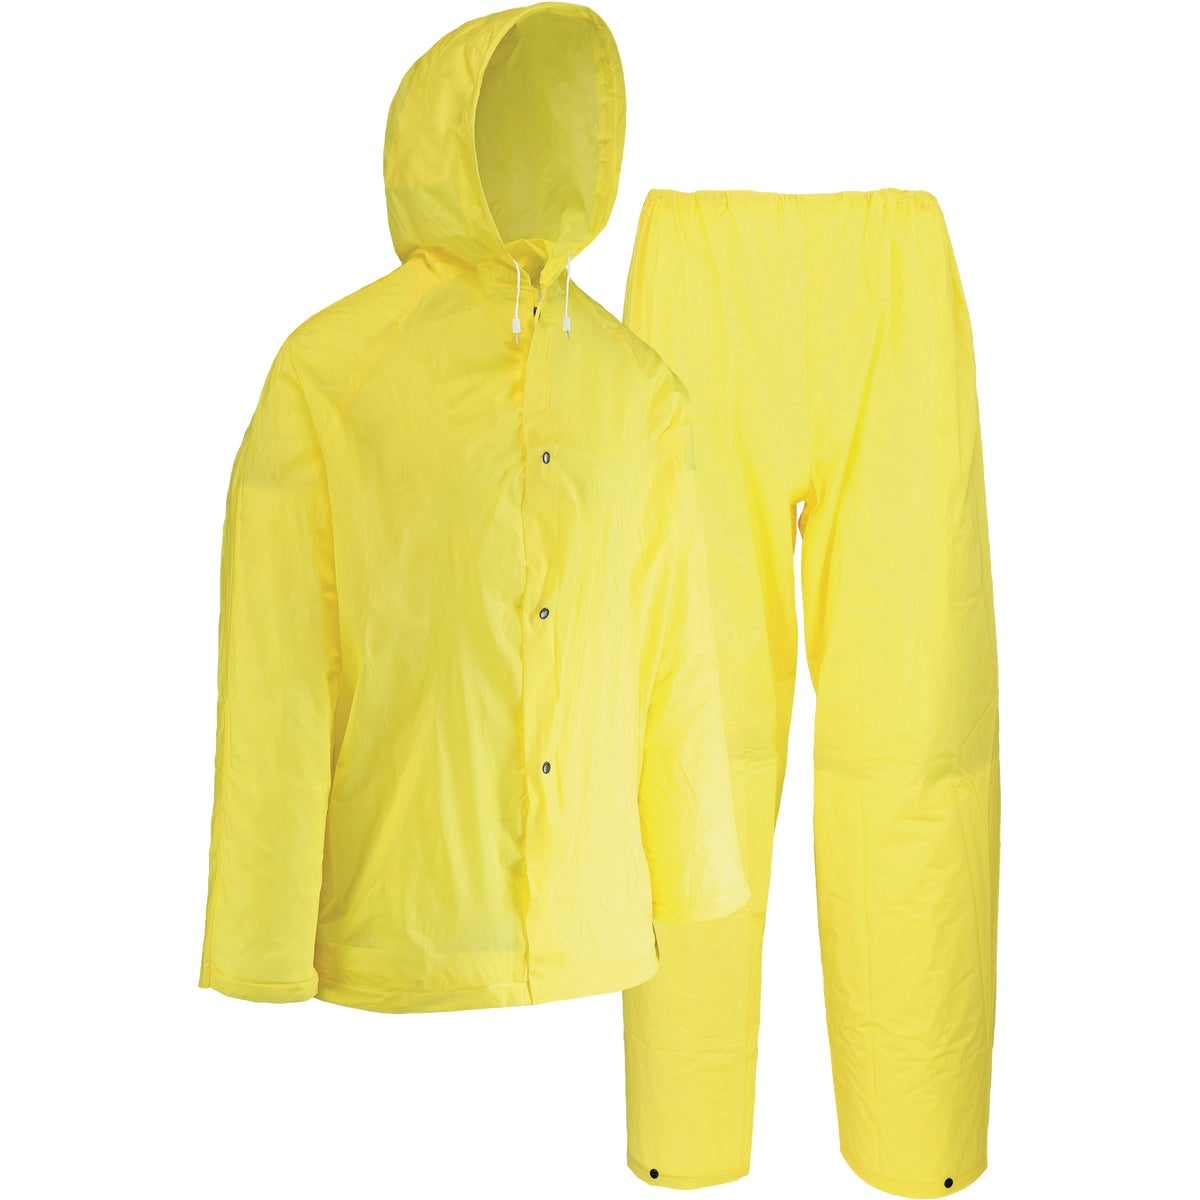 XL 3PC PVC RAIN SUIT